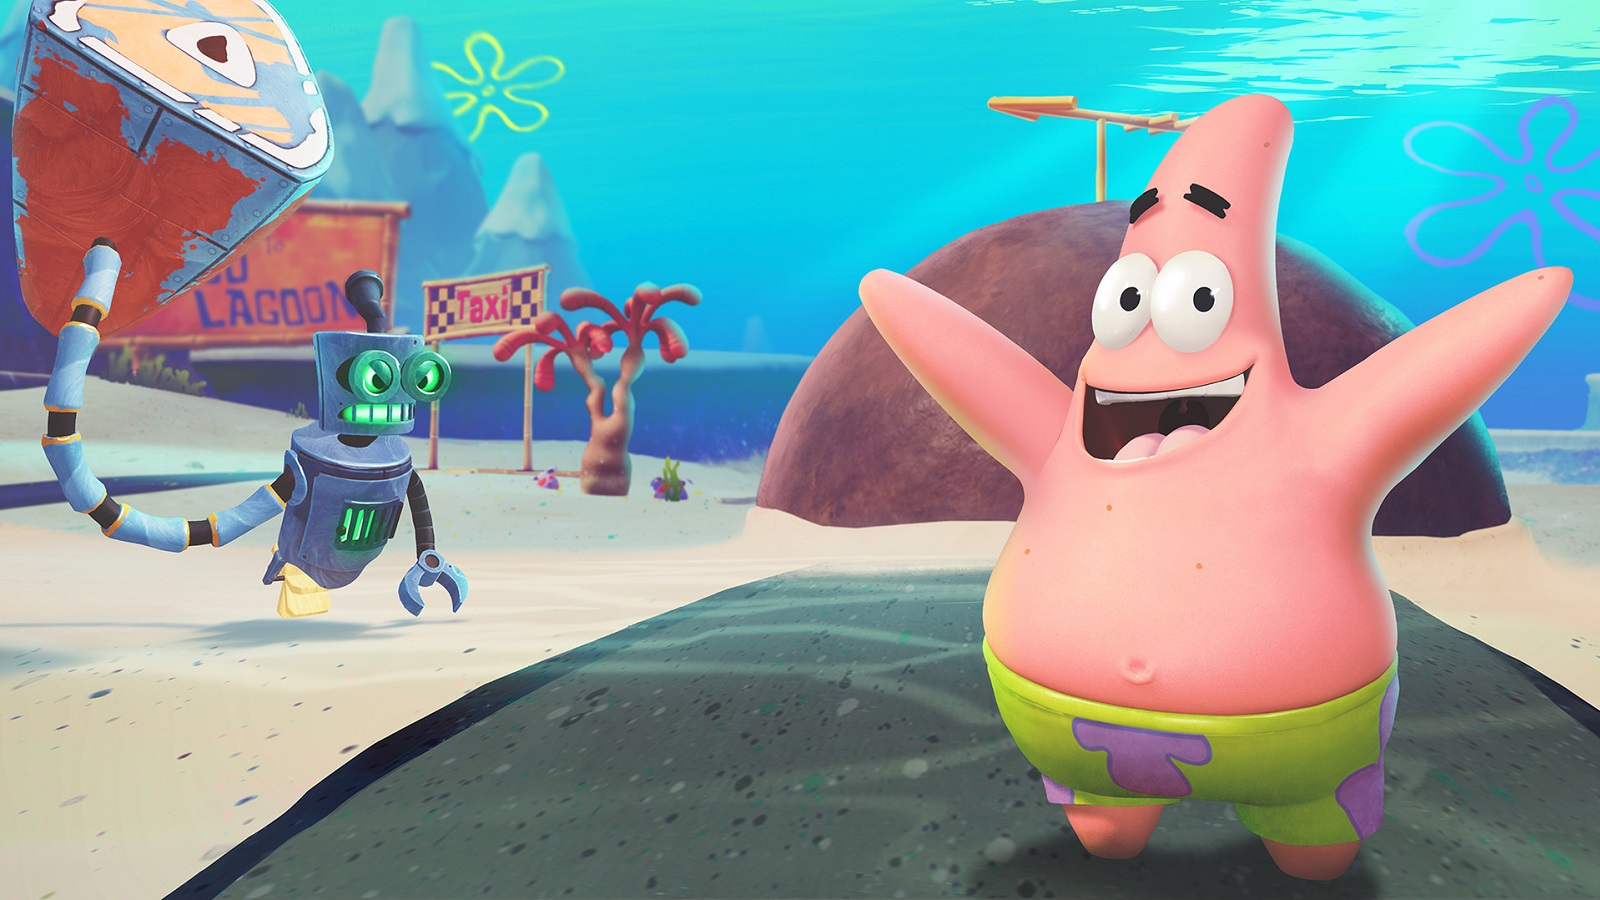 Трейлер SpongeBob SquarePants: Battle for Bikini Bottom - Rehydrated, посвящённый Патрику